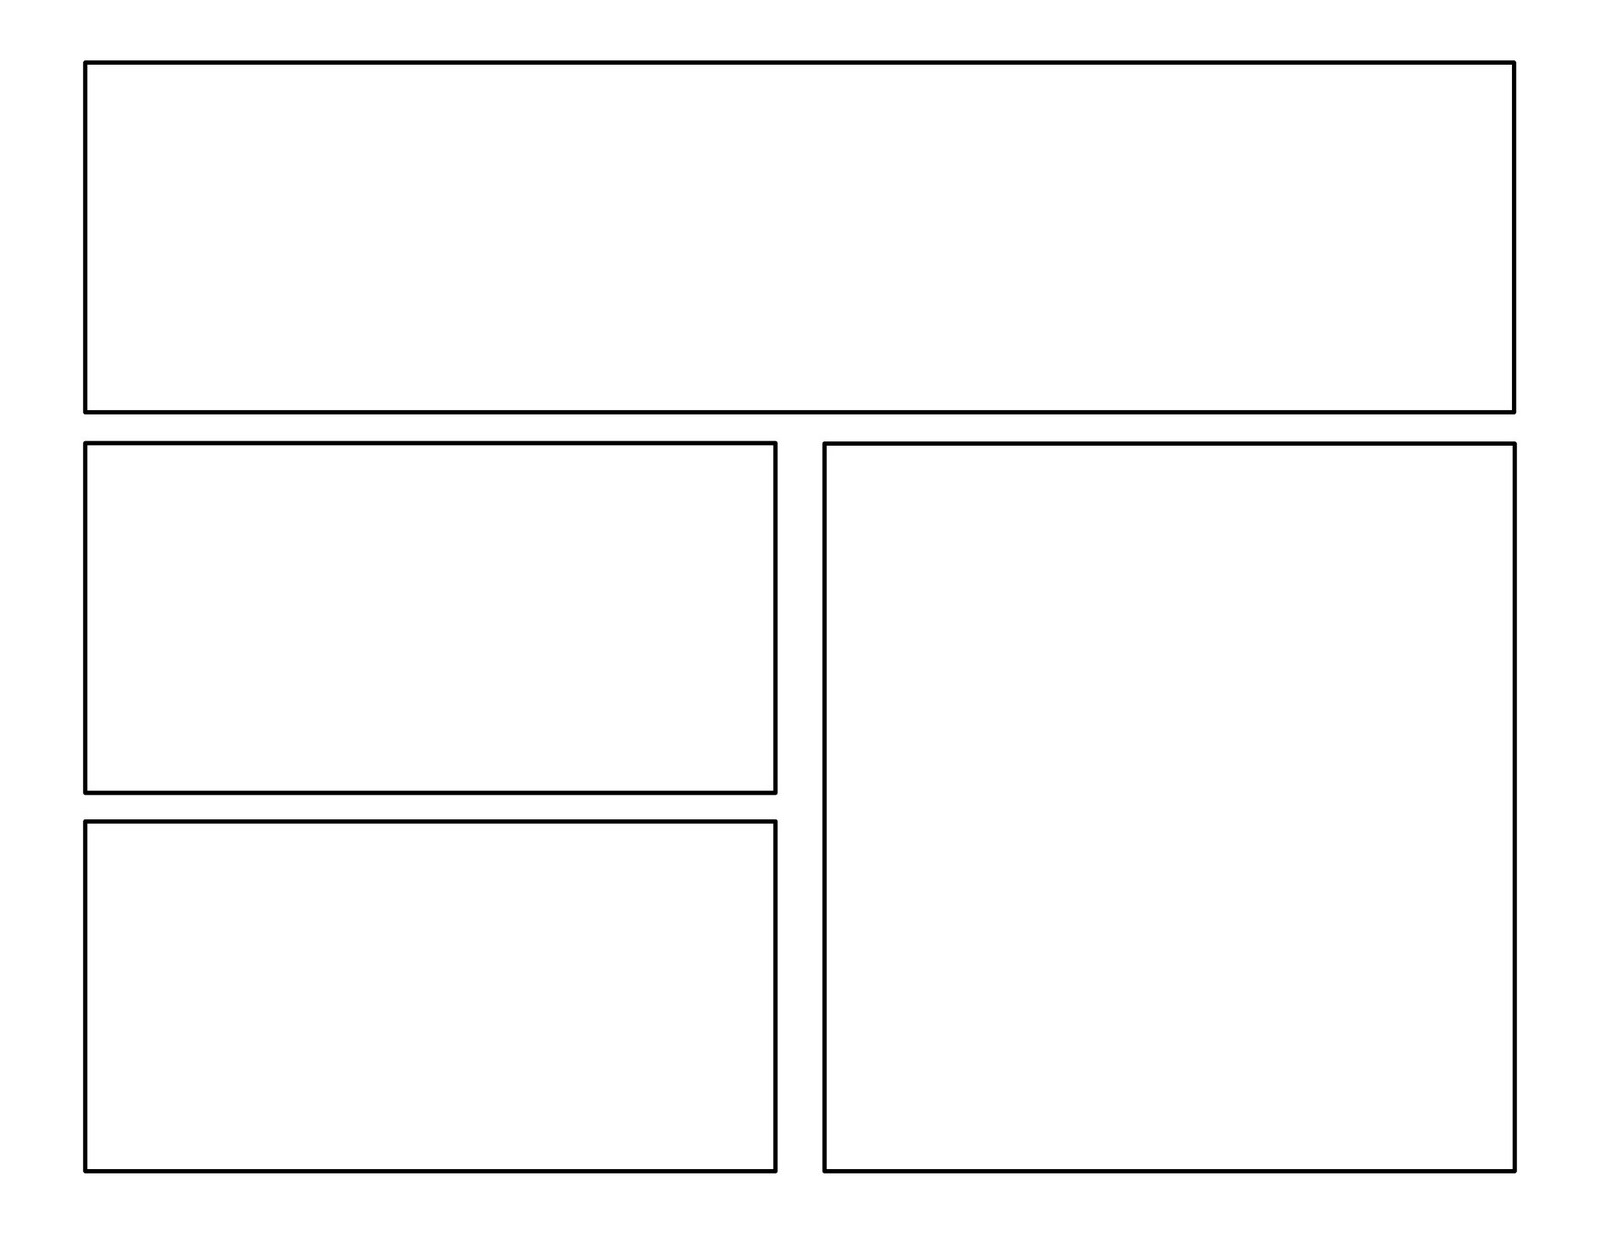 3rd grade first batch of comic templates first cousins of narrative writing to create a comic click on a template then drag it to your desktop to print and share pronofoot35fo Gallery